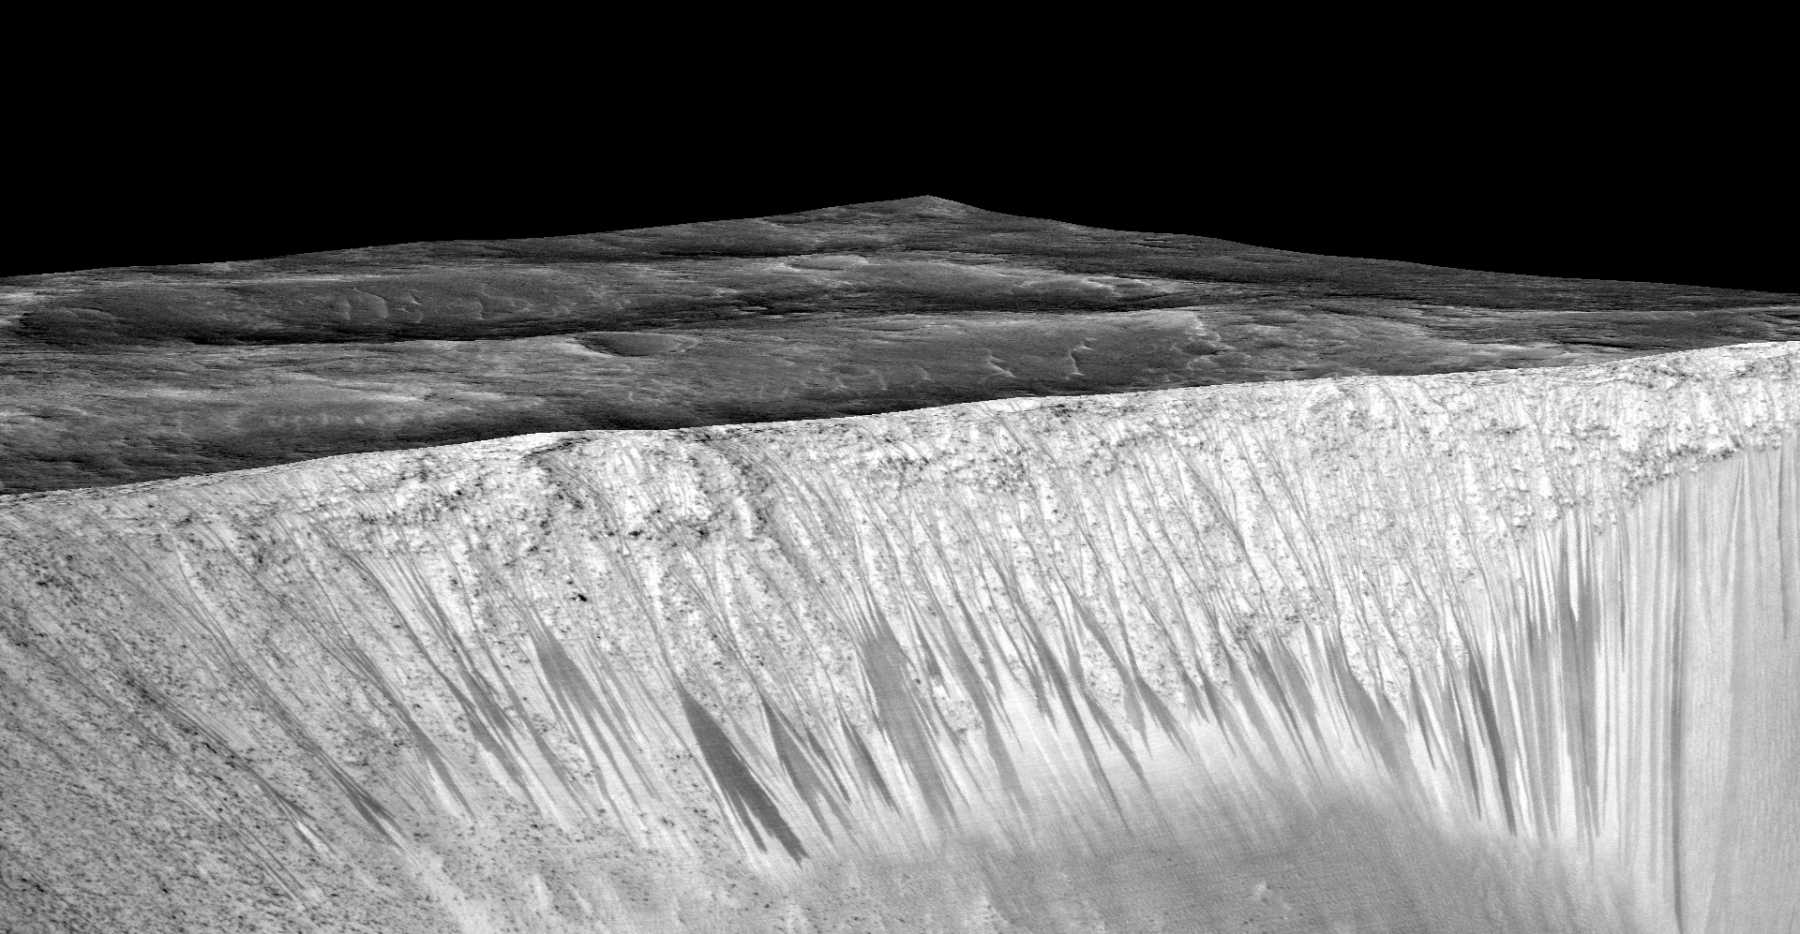 NASA Finds Evidence Of Recent Water On Mars | Mars